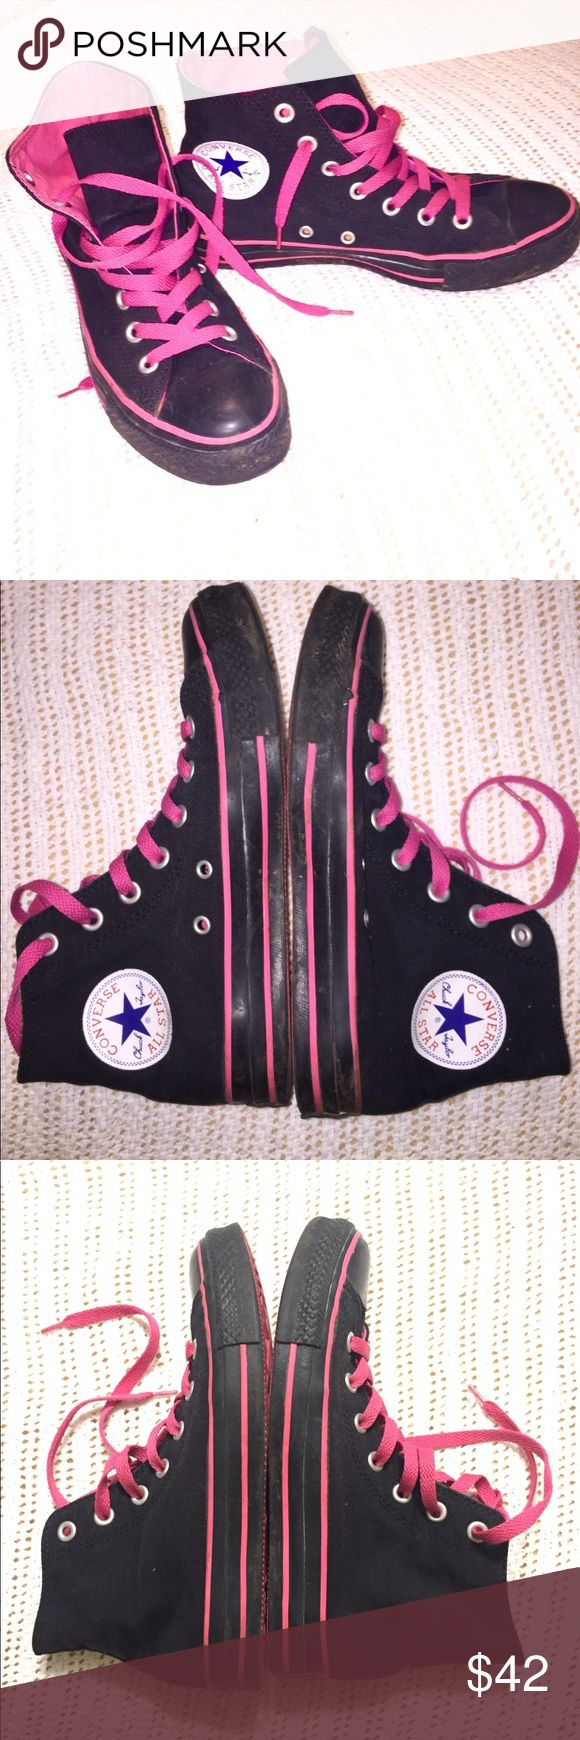 EUC hi-top converse Black and hot pink converse. In GREAT shape. No holes, no stains. Worn only a handful of times. Women's size 7/men's size 5. Sticker mark inside left shoe. 🚫NO TRADES Converse Shoes Sneakers